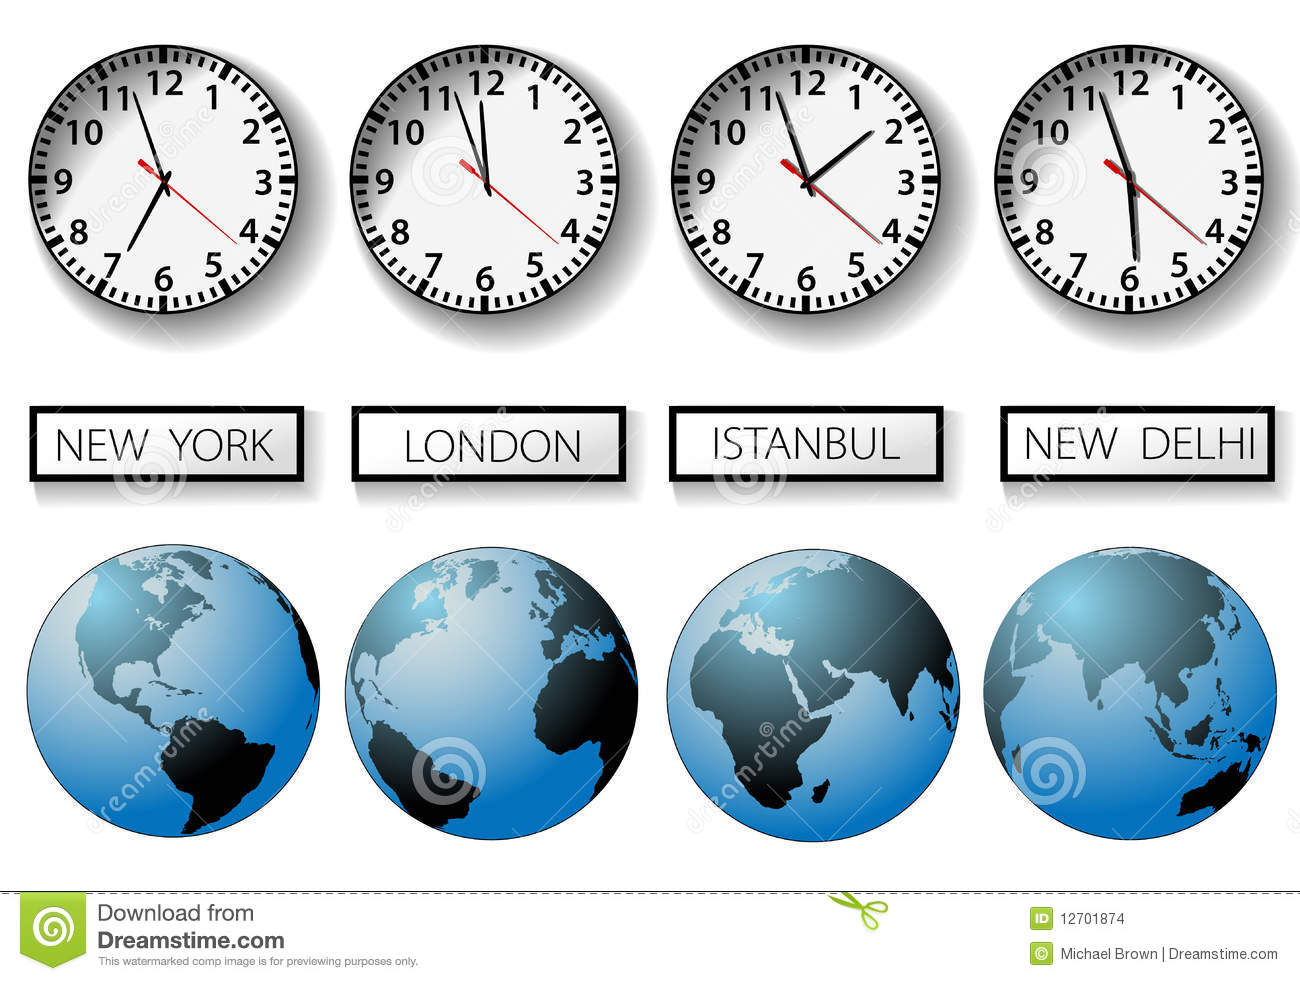 World City Time Zone Clocks And Globes Stock Images - Image: 12701874